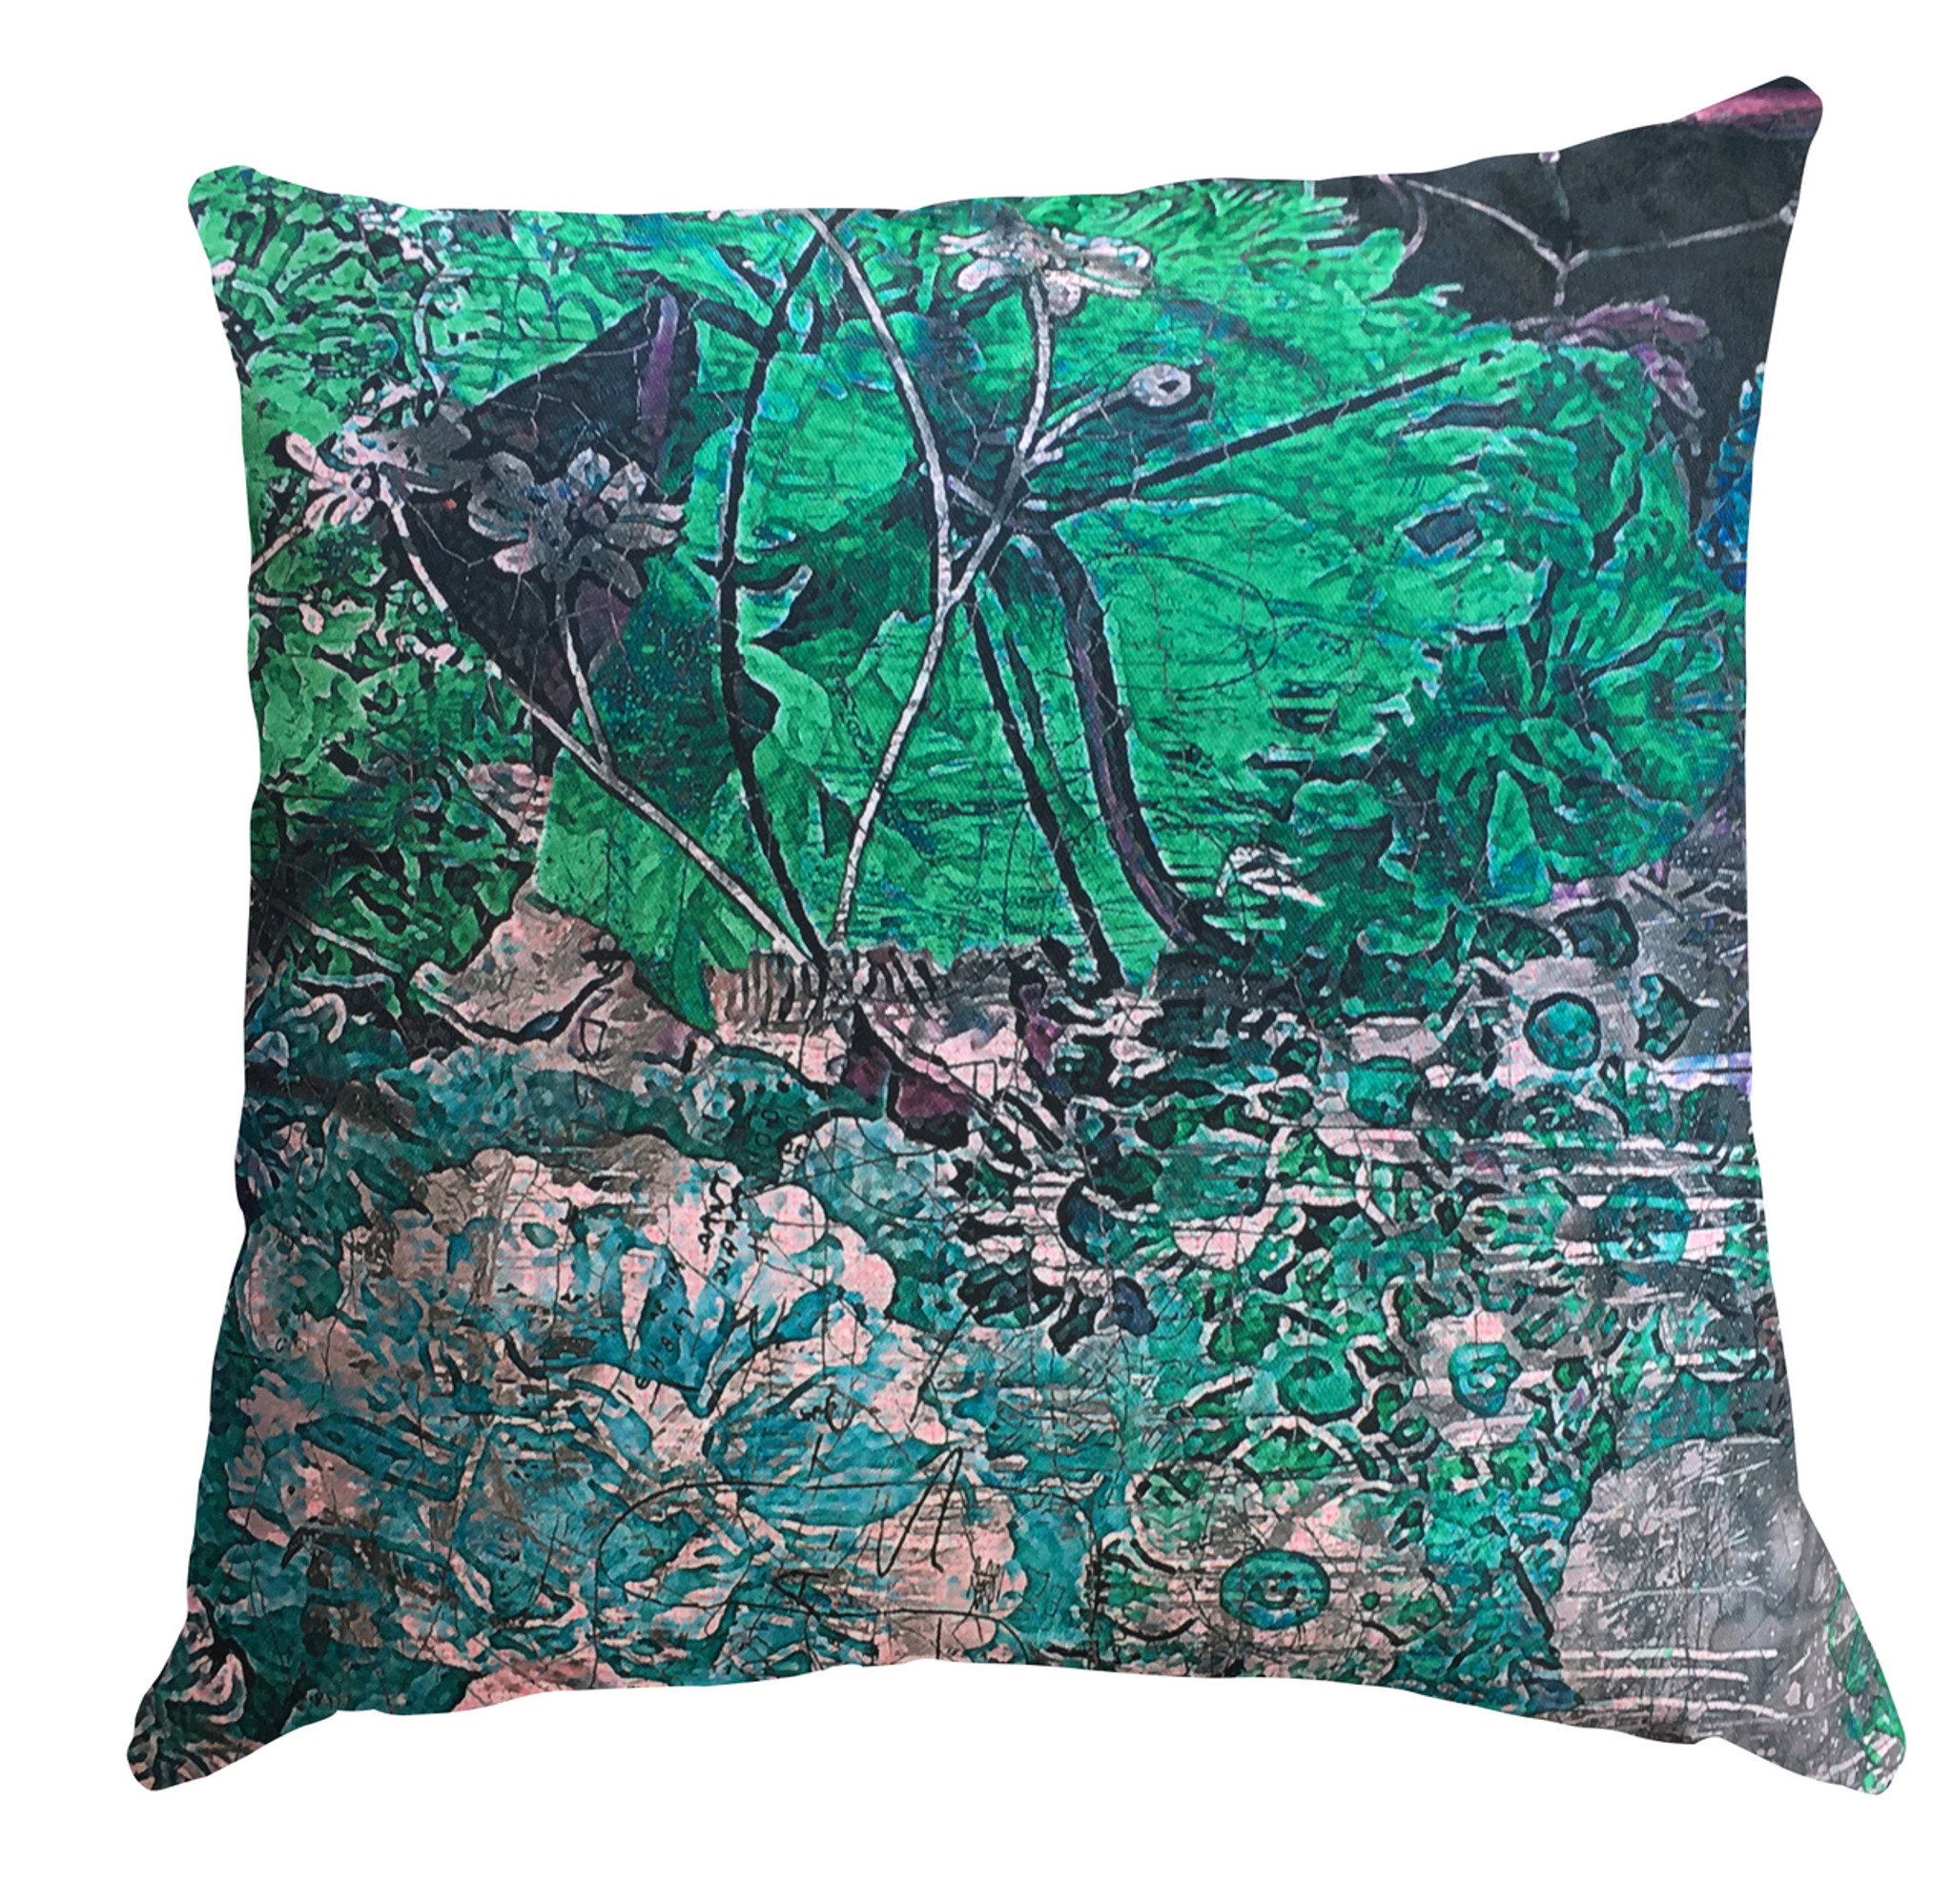 Cushion - Still Life with Flowers - Emerald